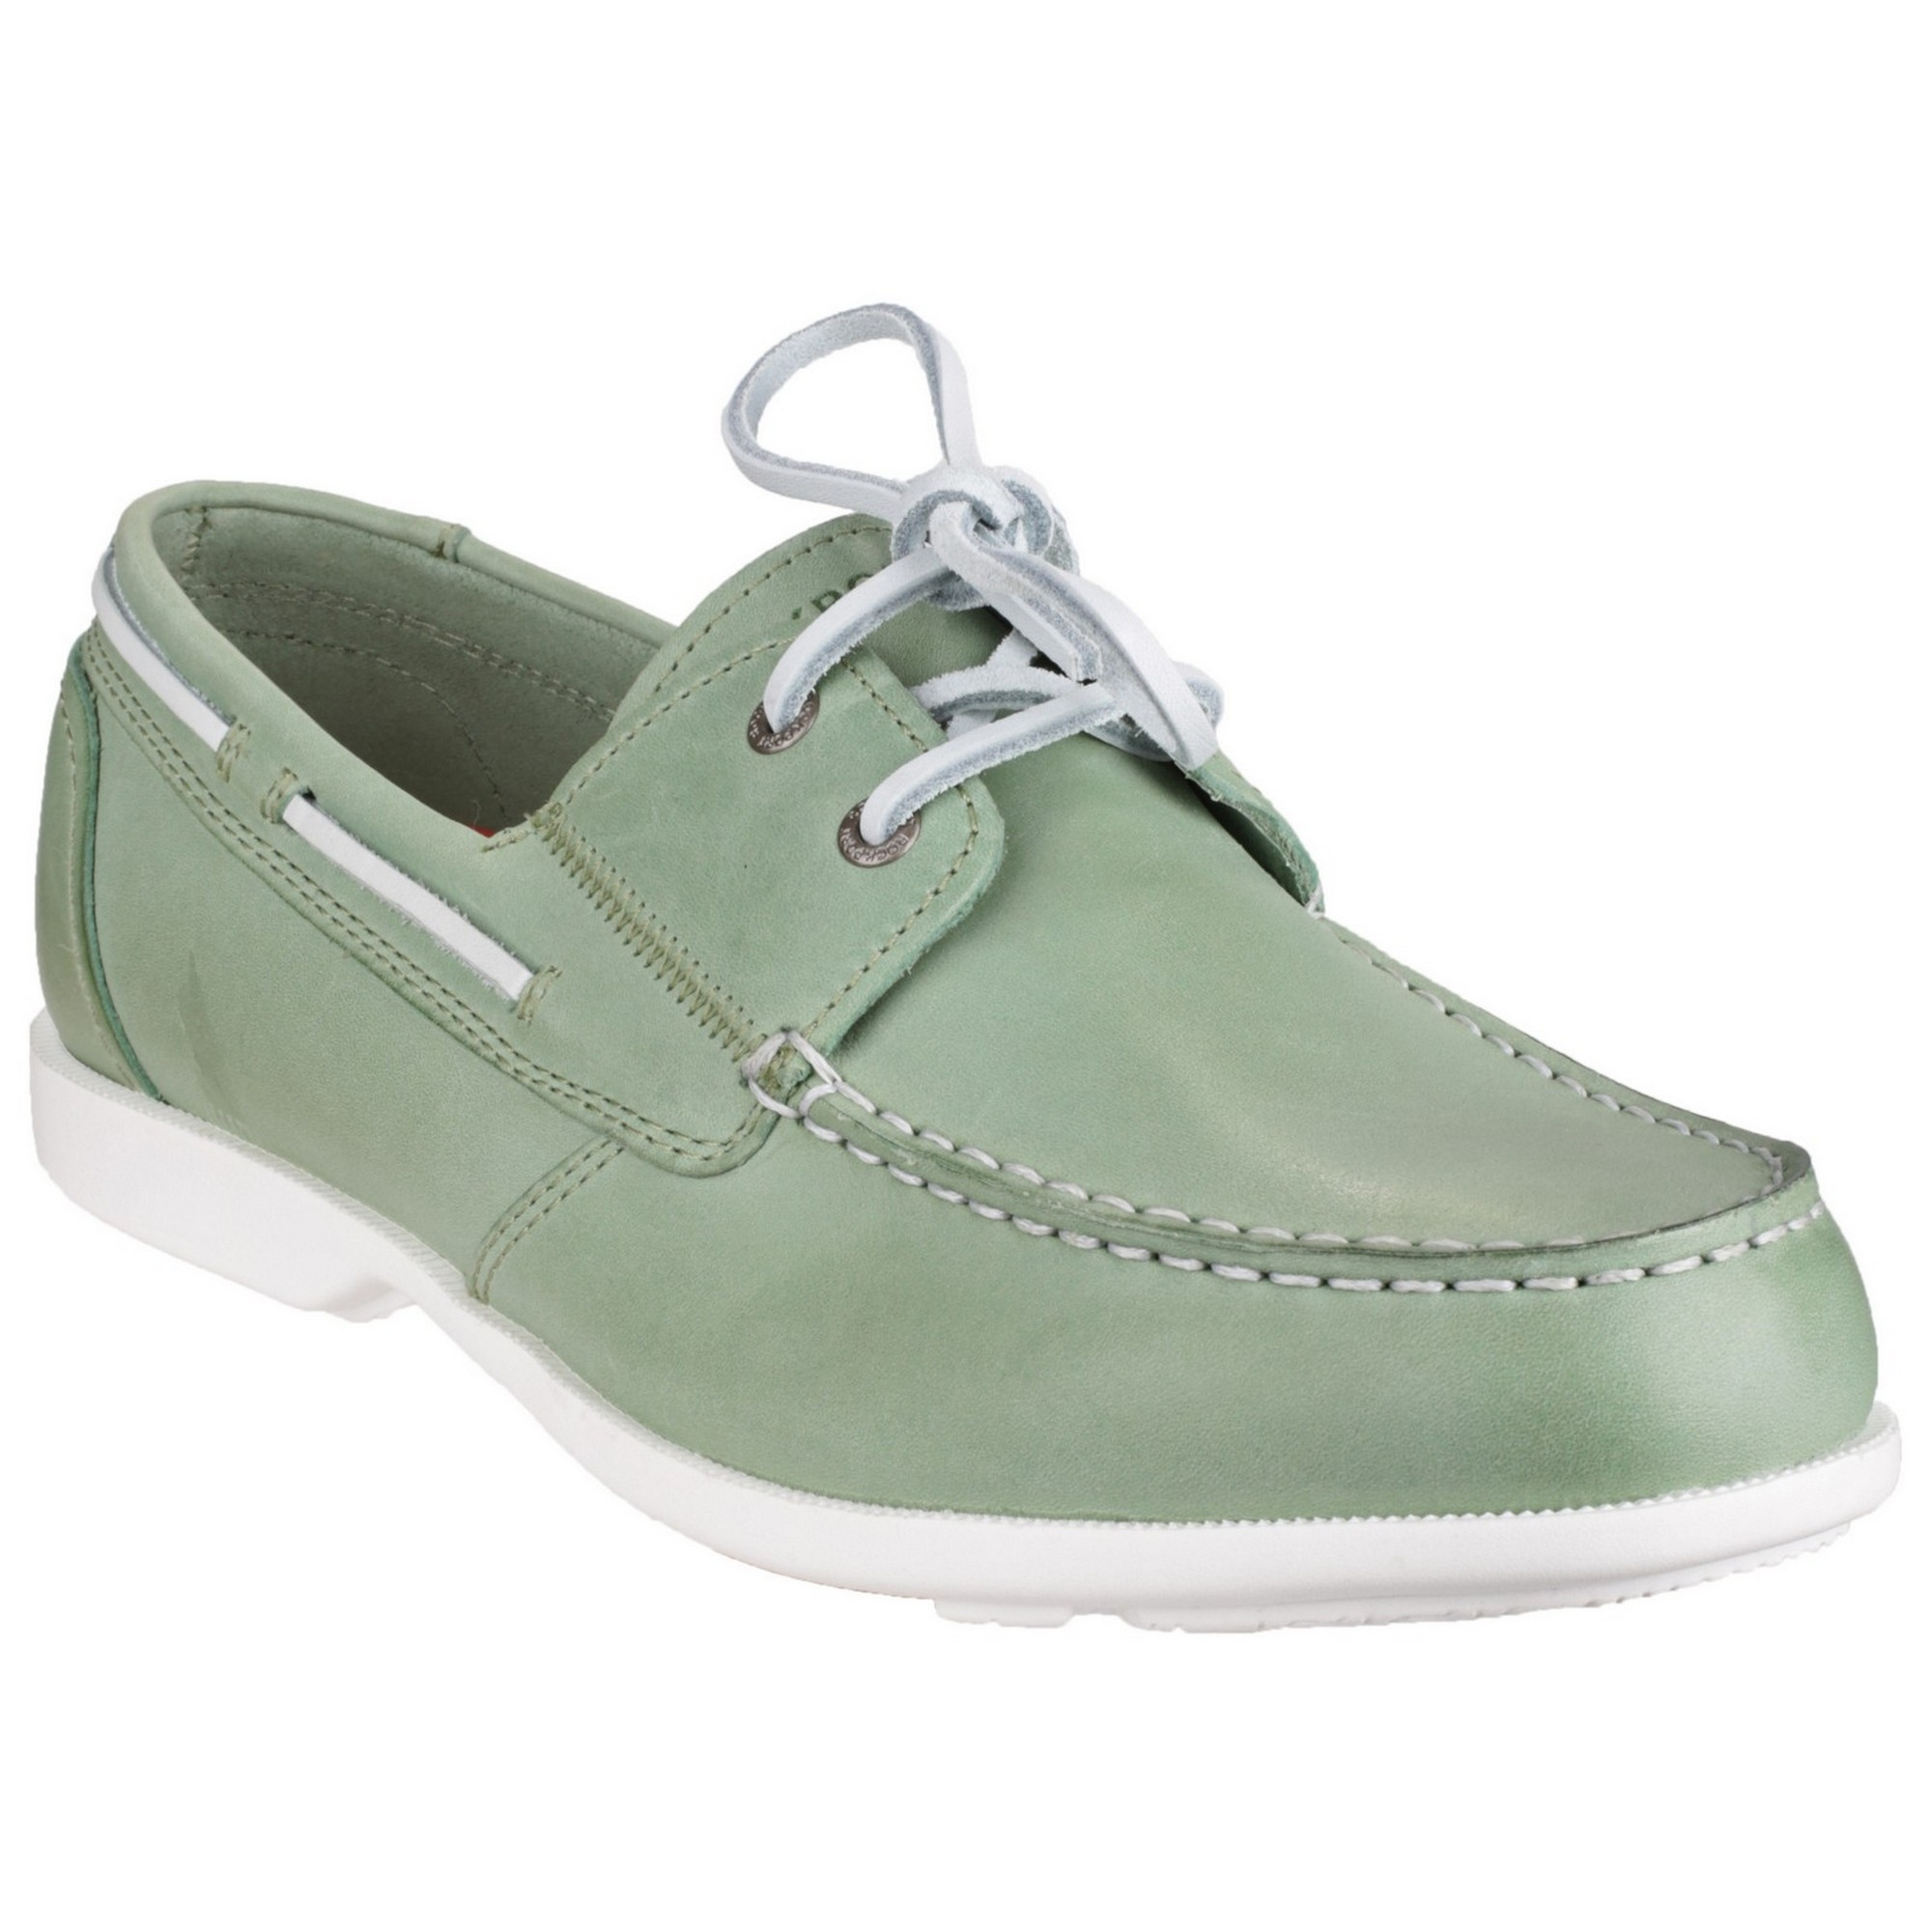 Rockport Mens Summer Sea II Leather Boat Shoes